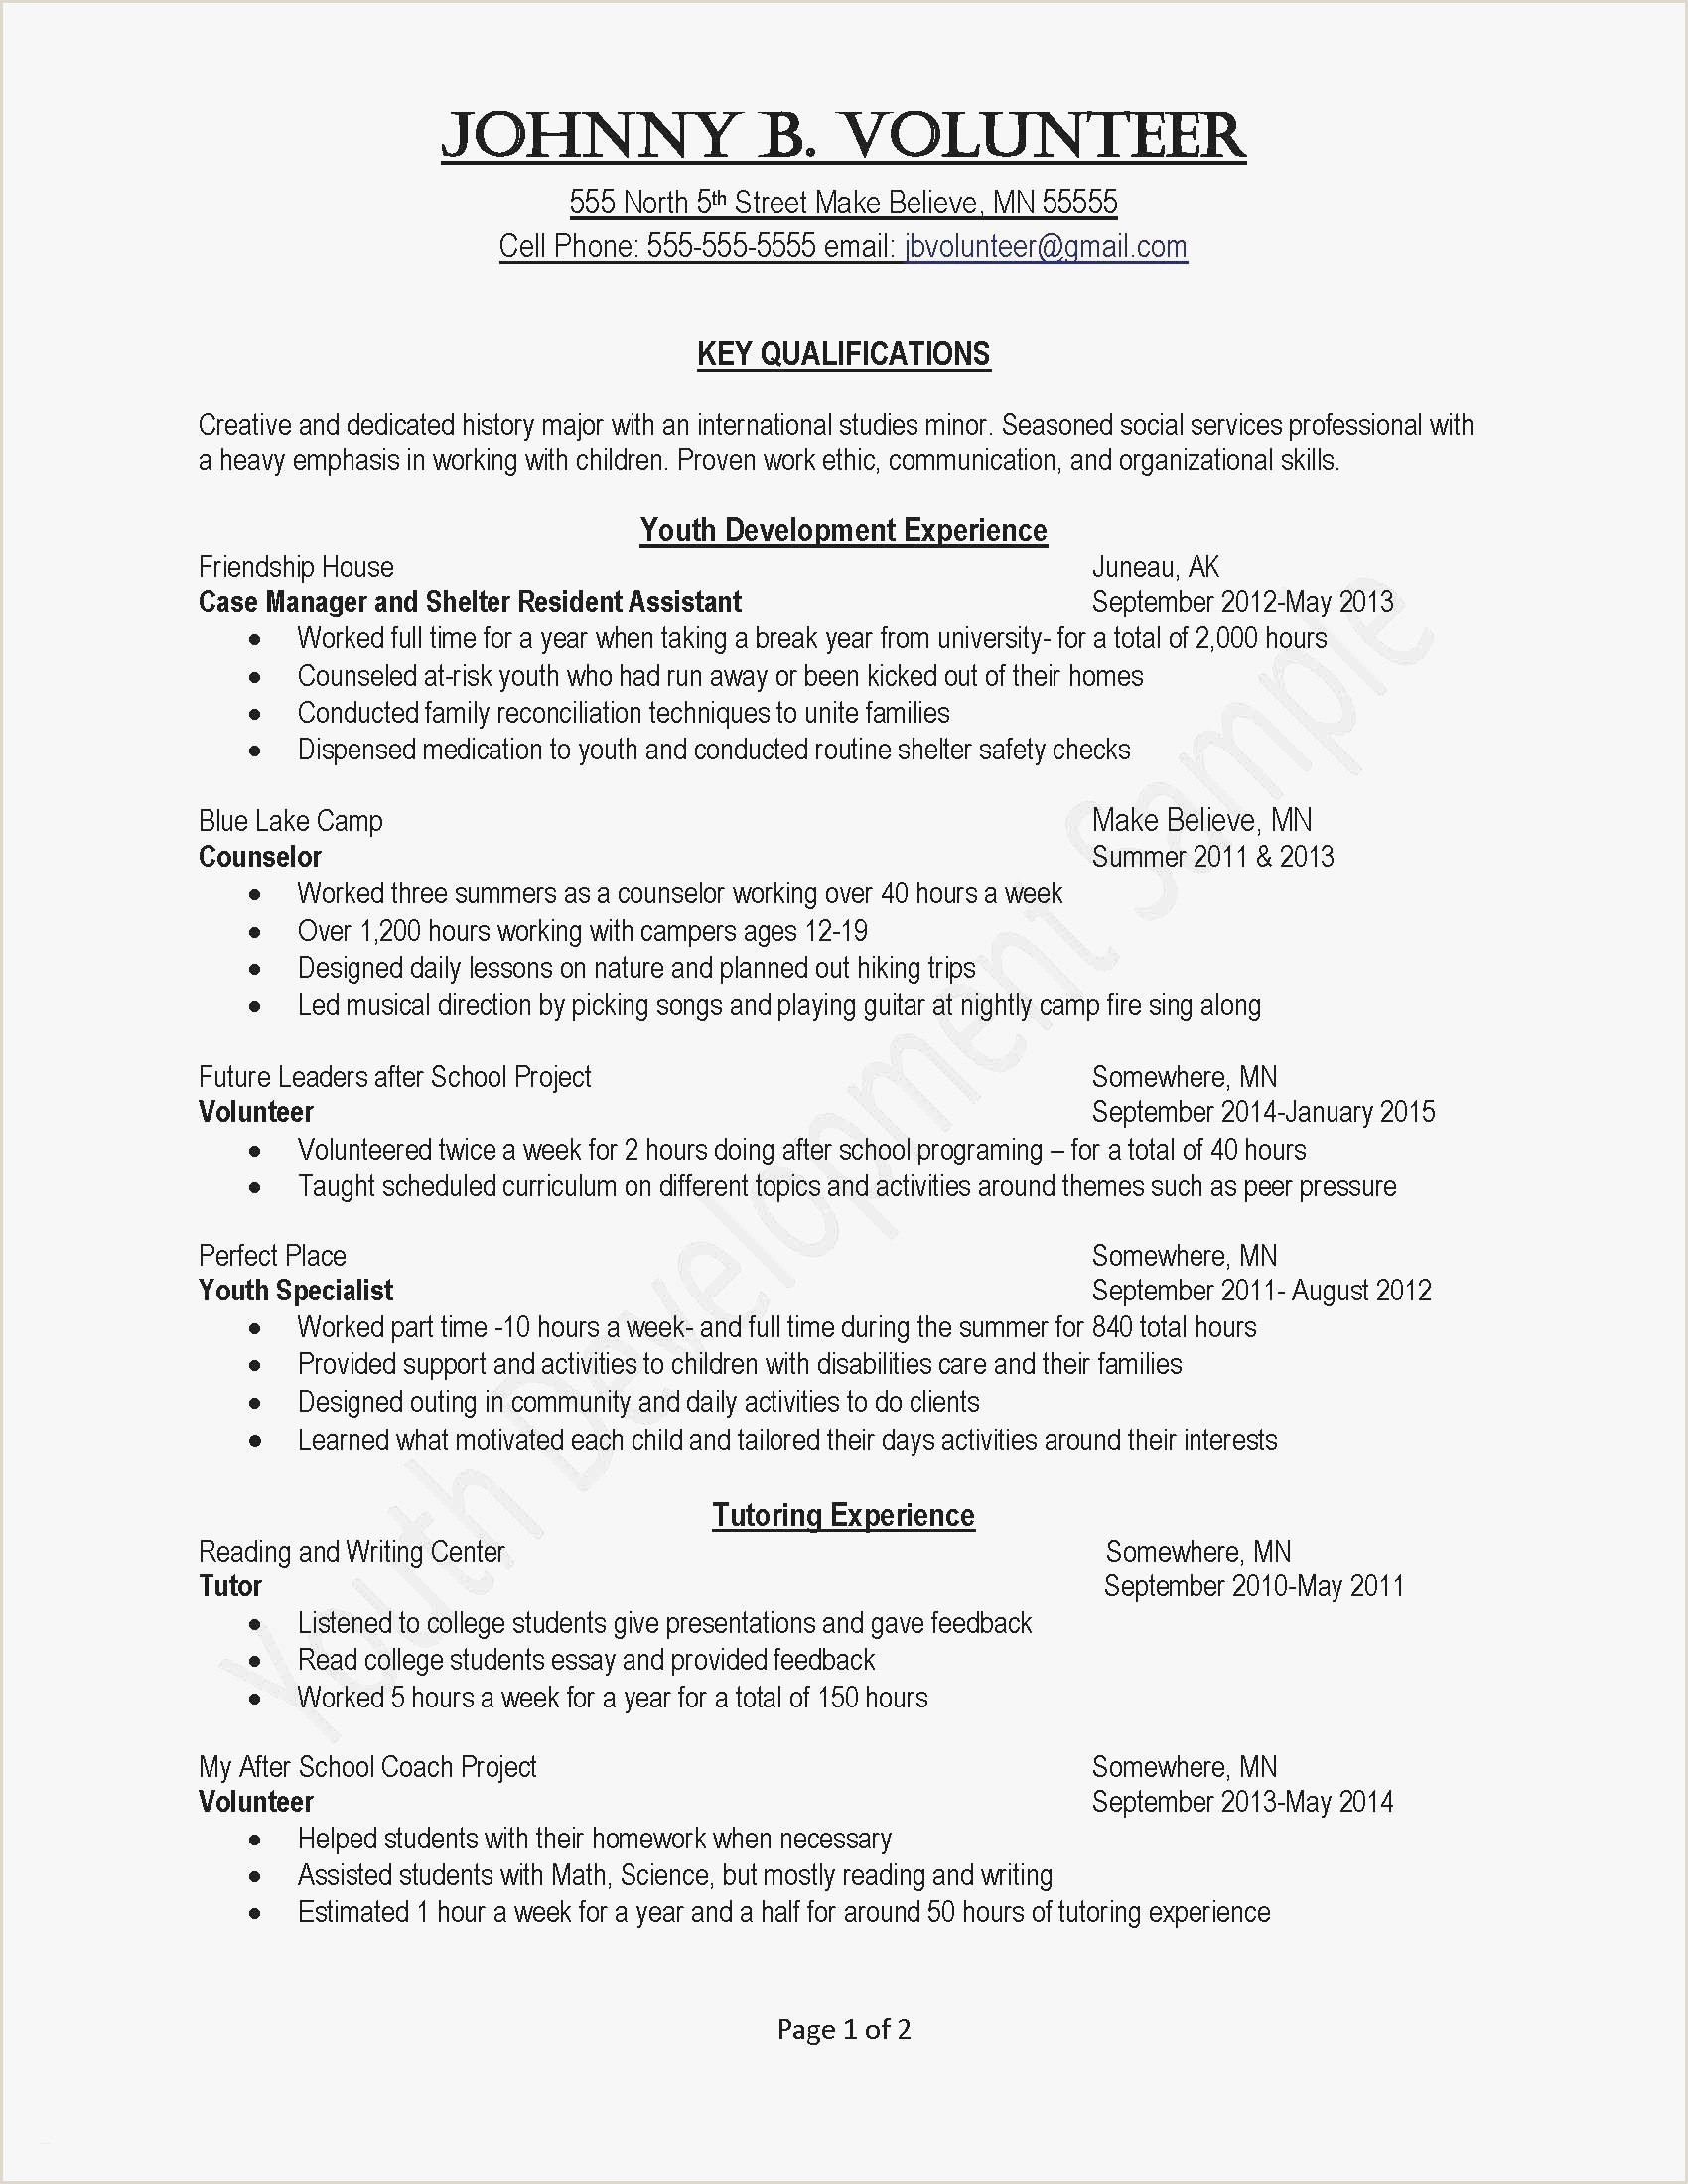 New Tutor Resume Sample